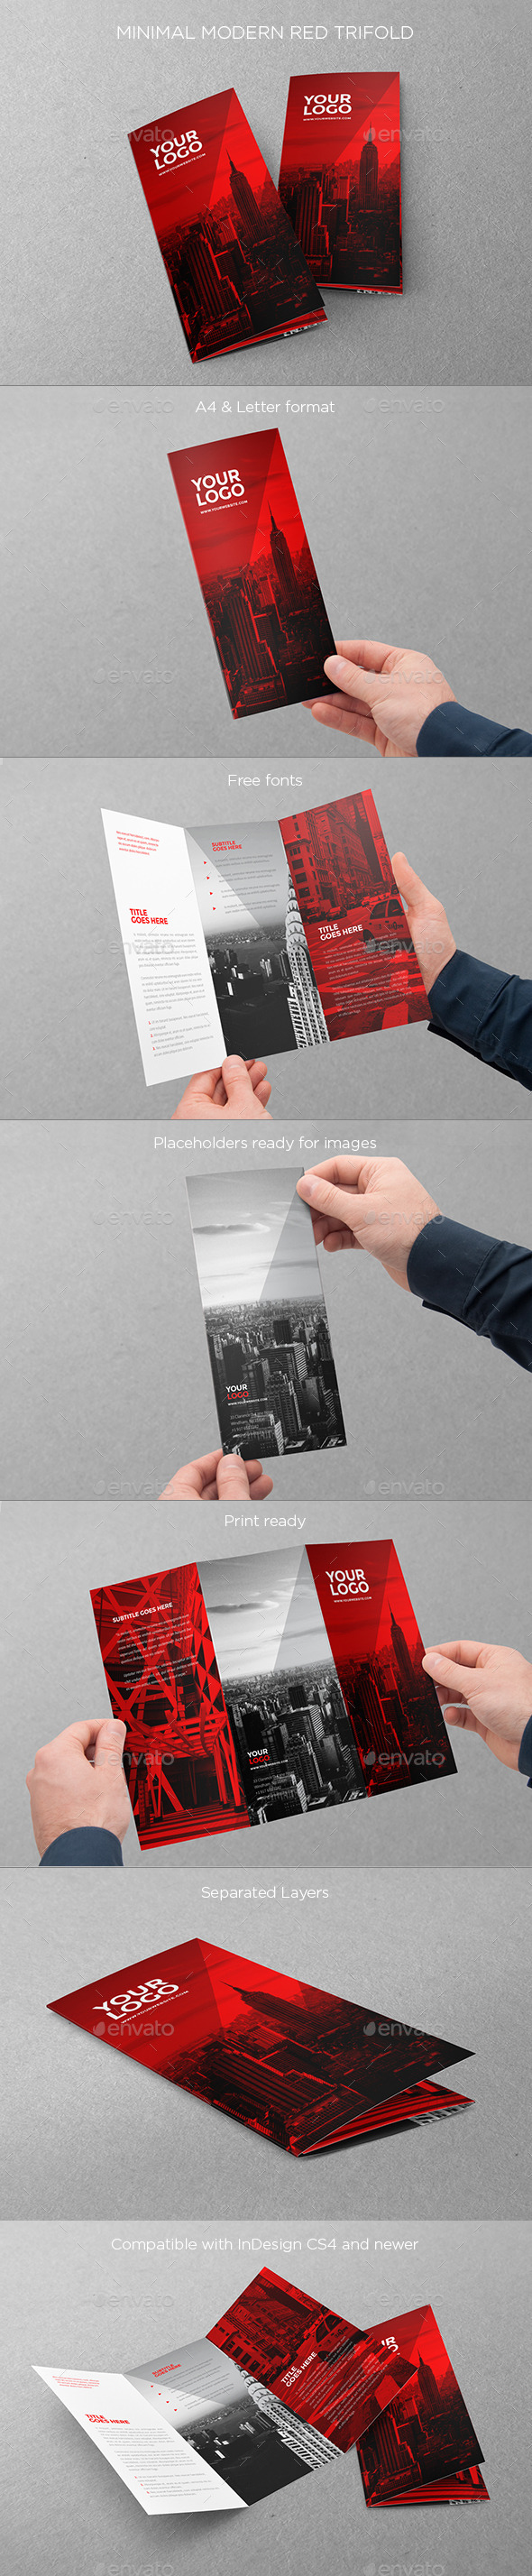 GraphicRiver Minimal Modern Red Trifold 11403554